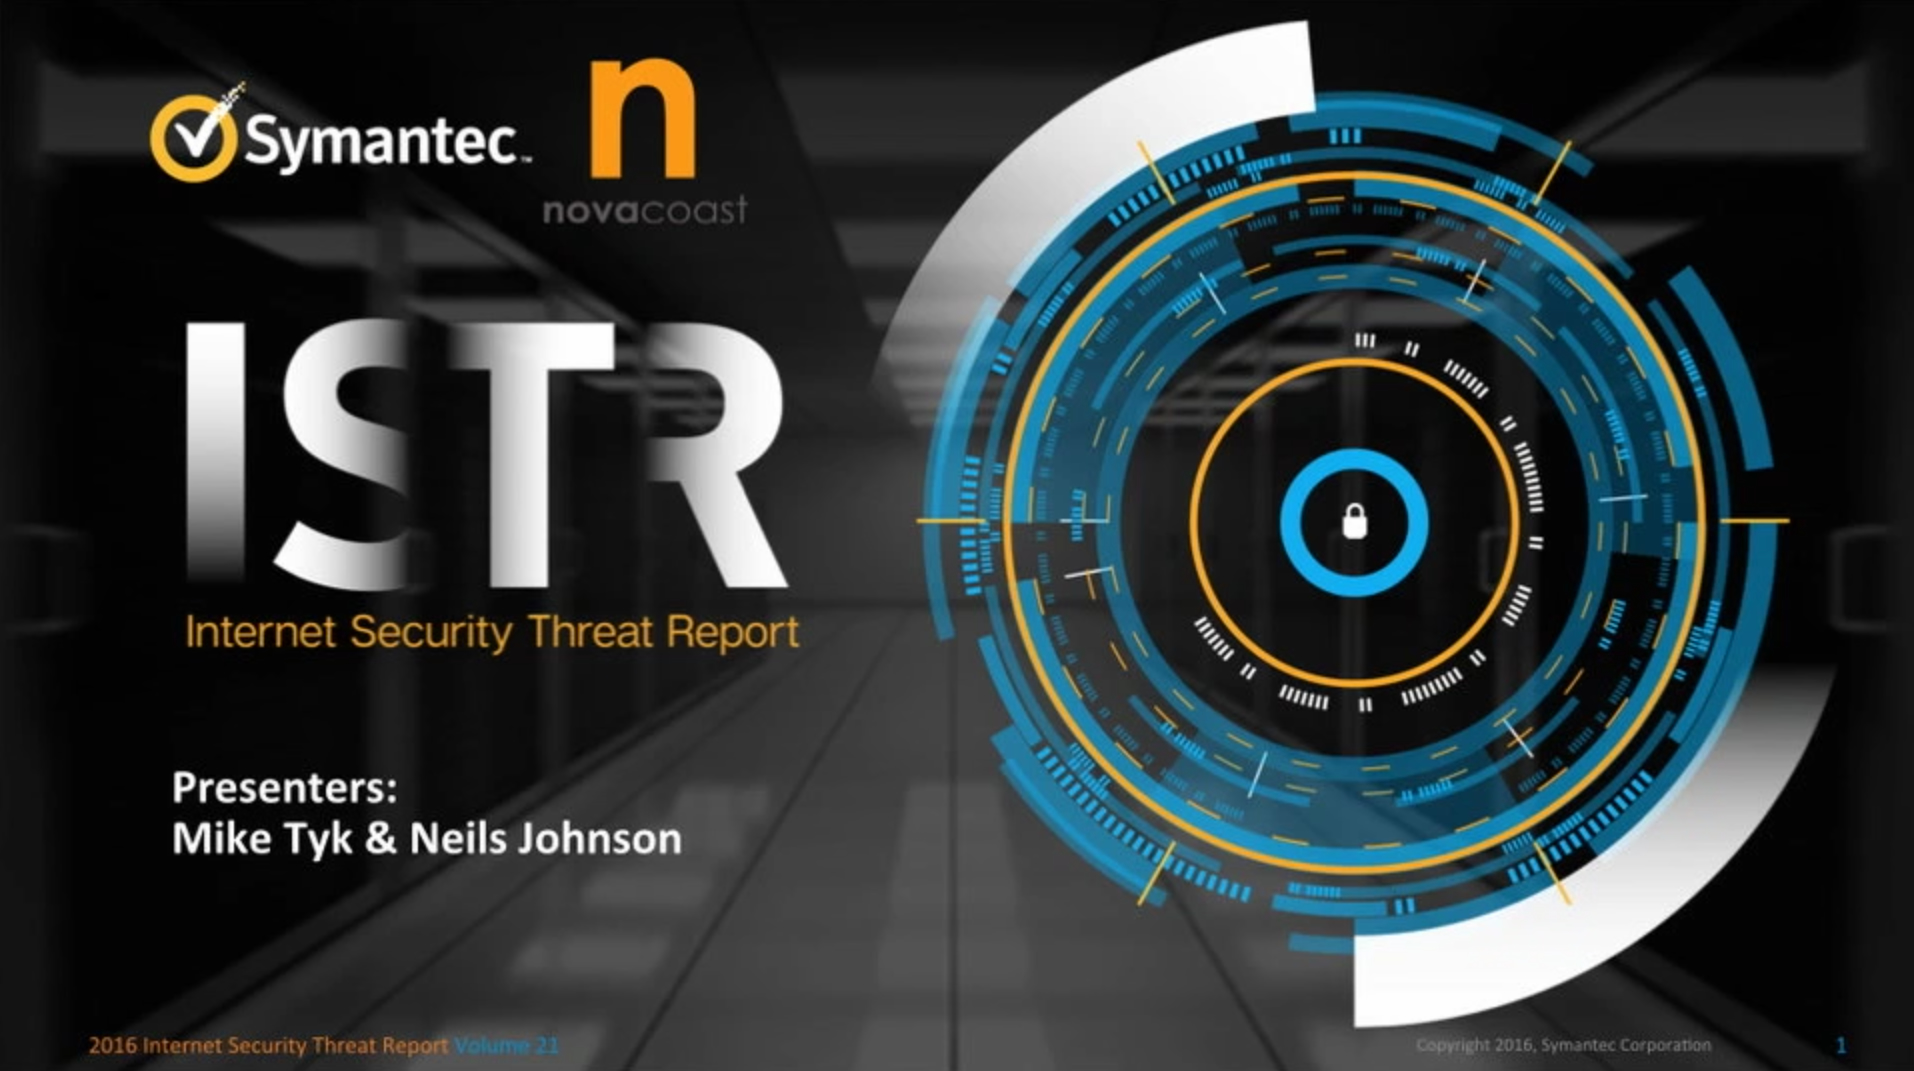 Analyzing the 2016 Internet Security Threat Report